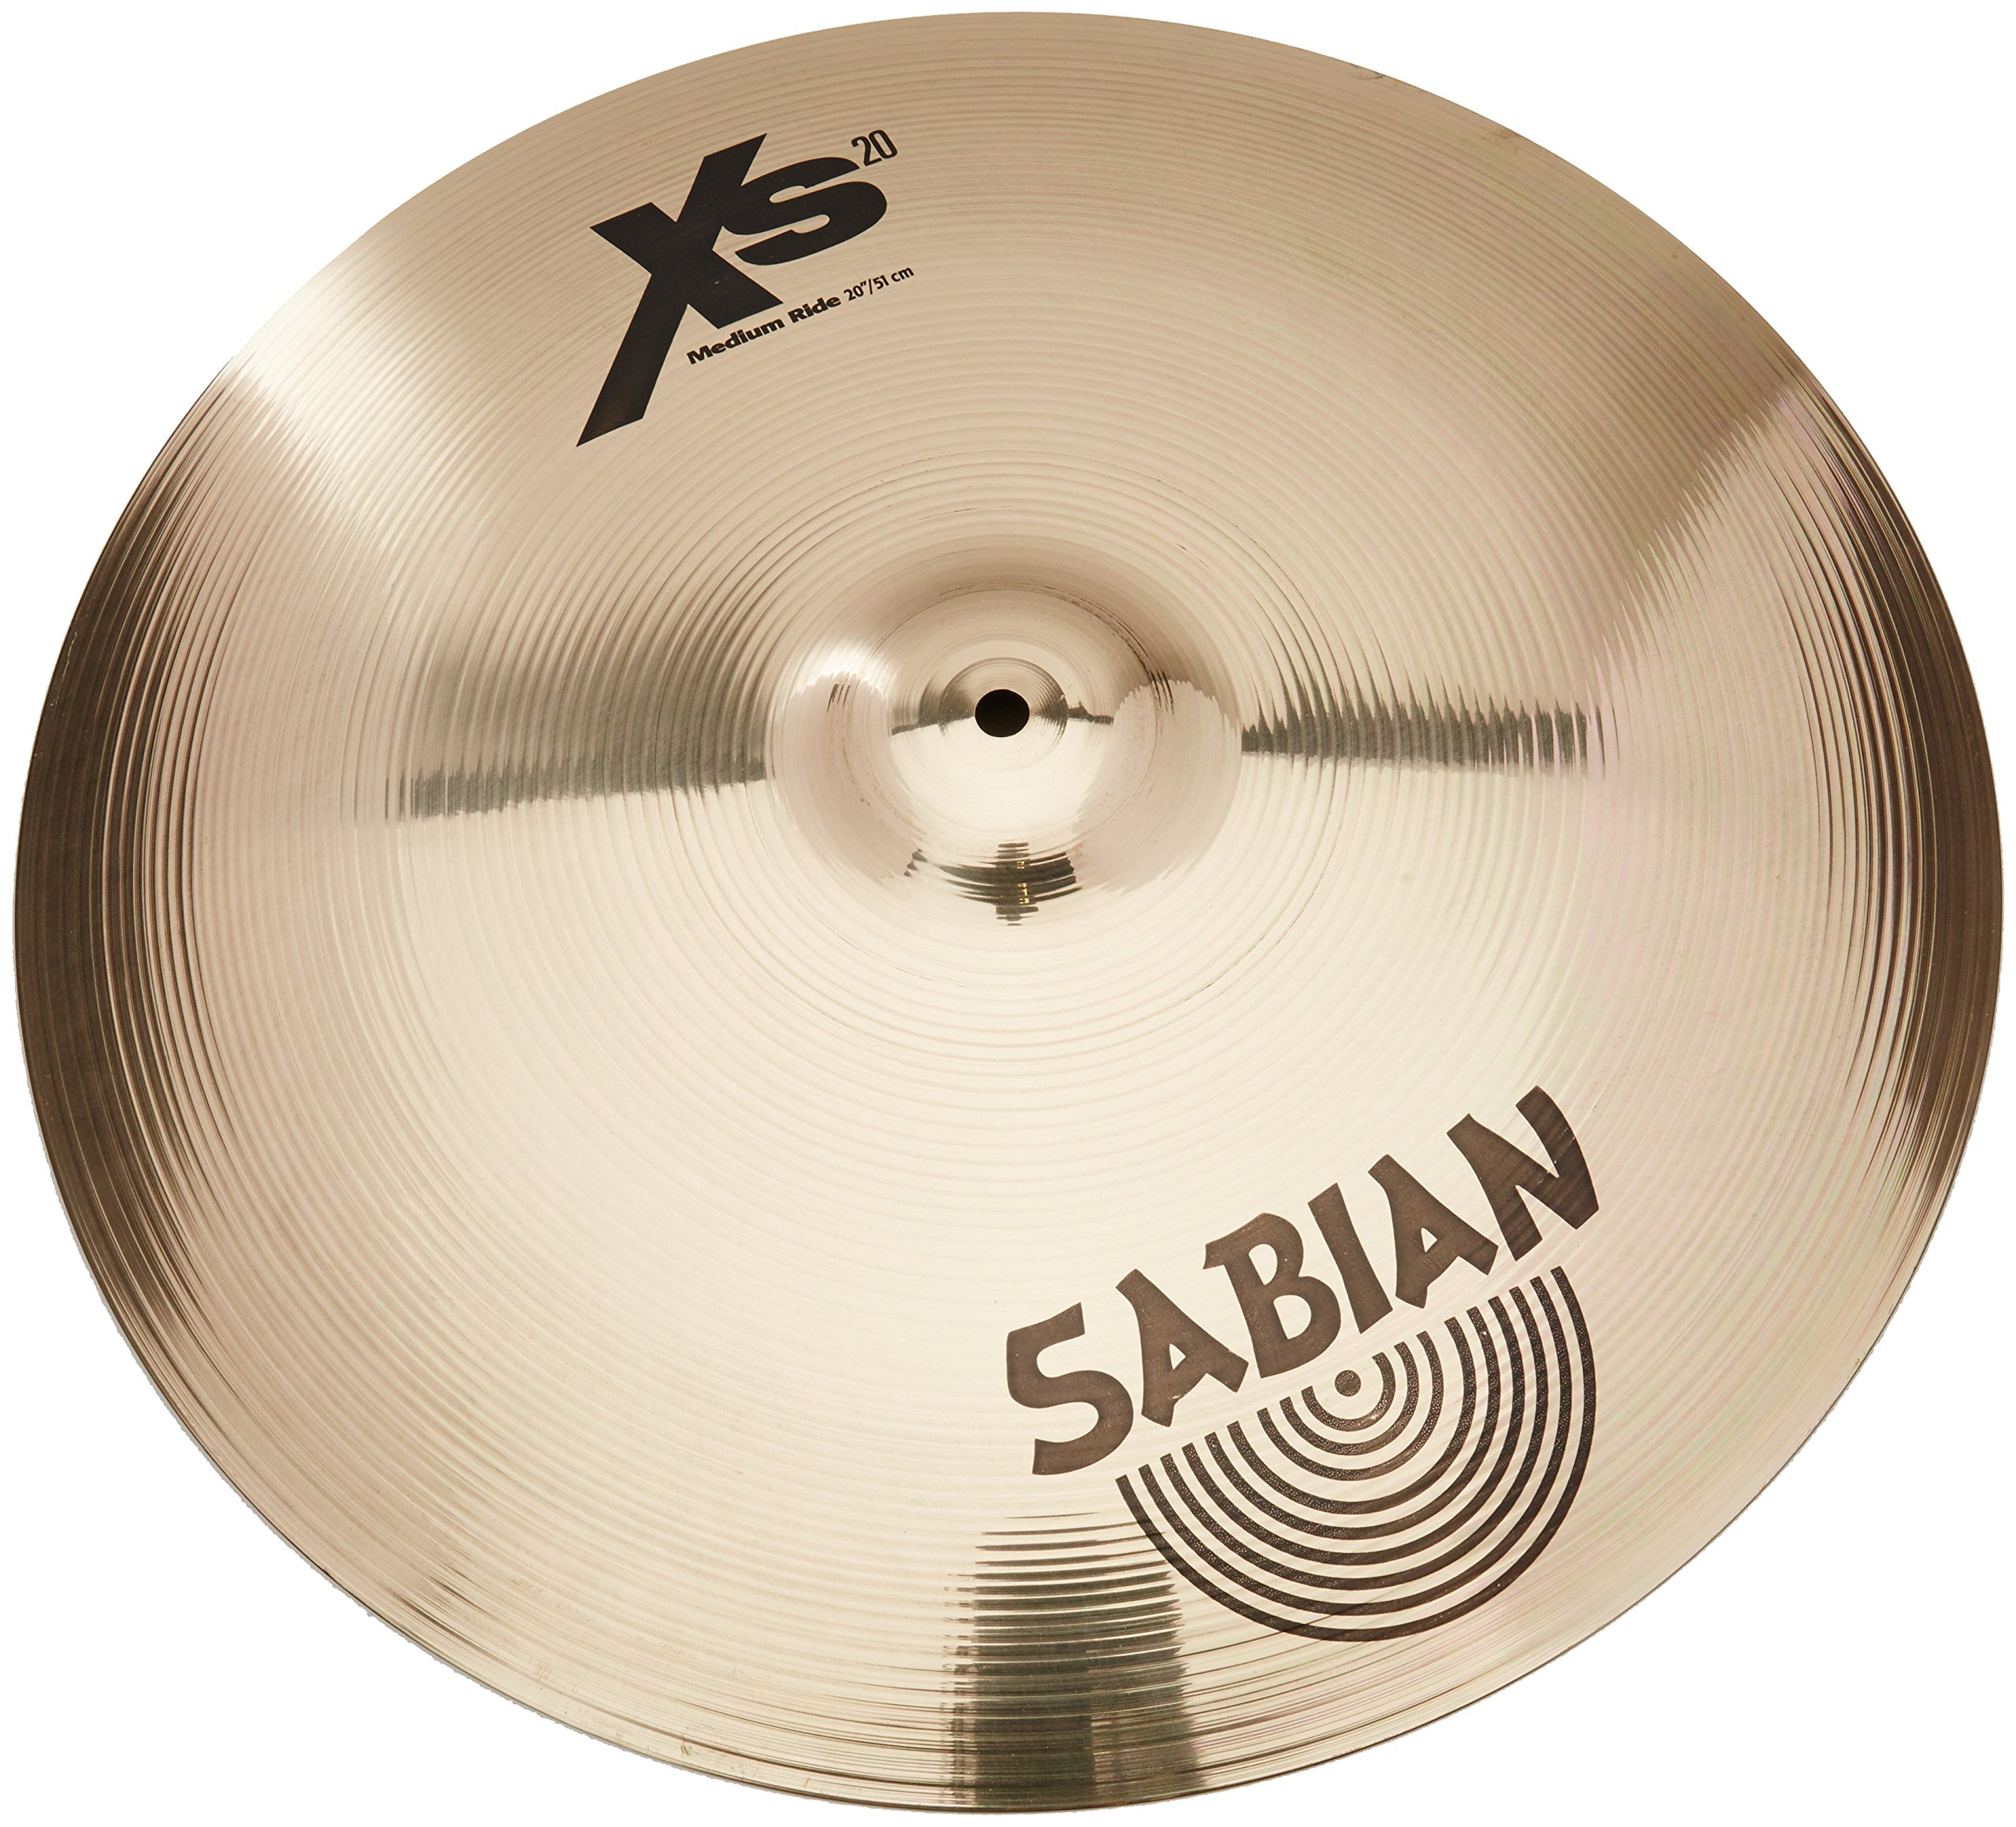 Sabian 20 Inch XS20 Medium Ride